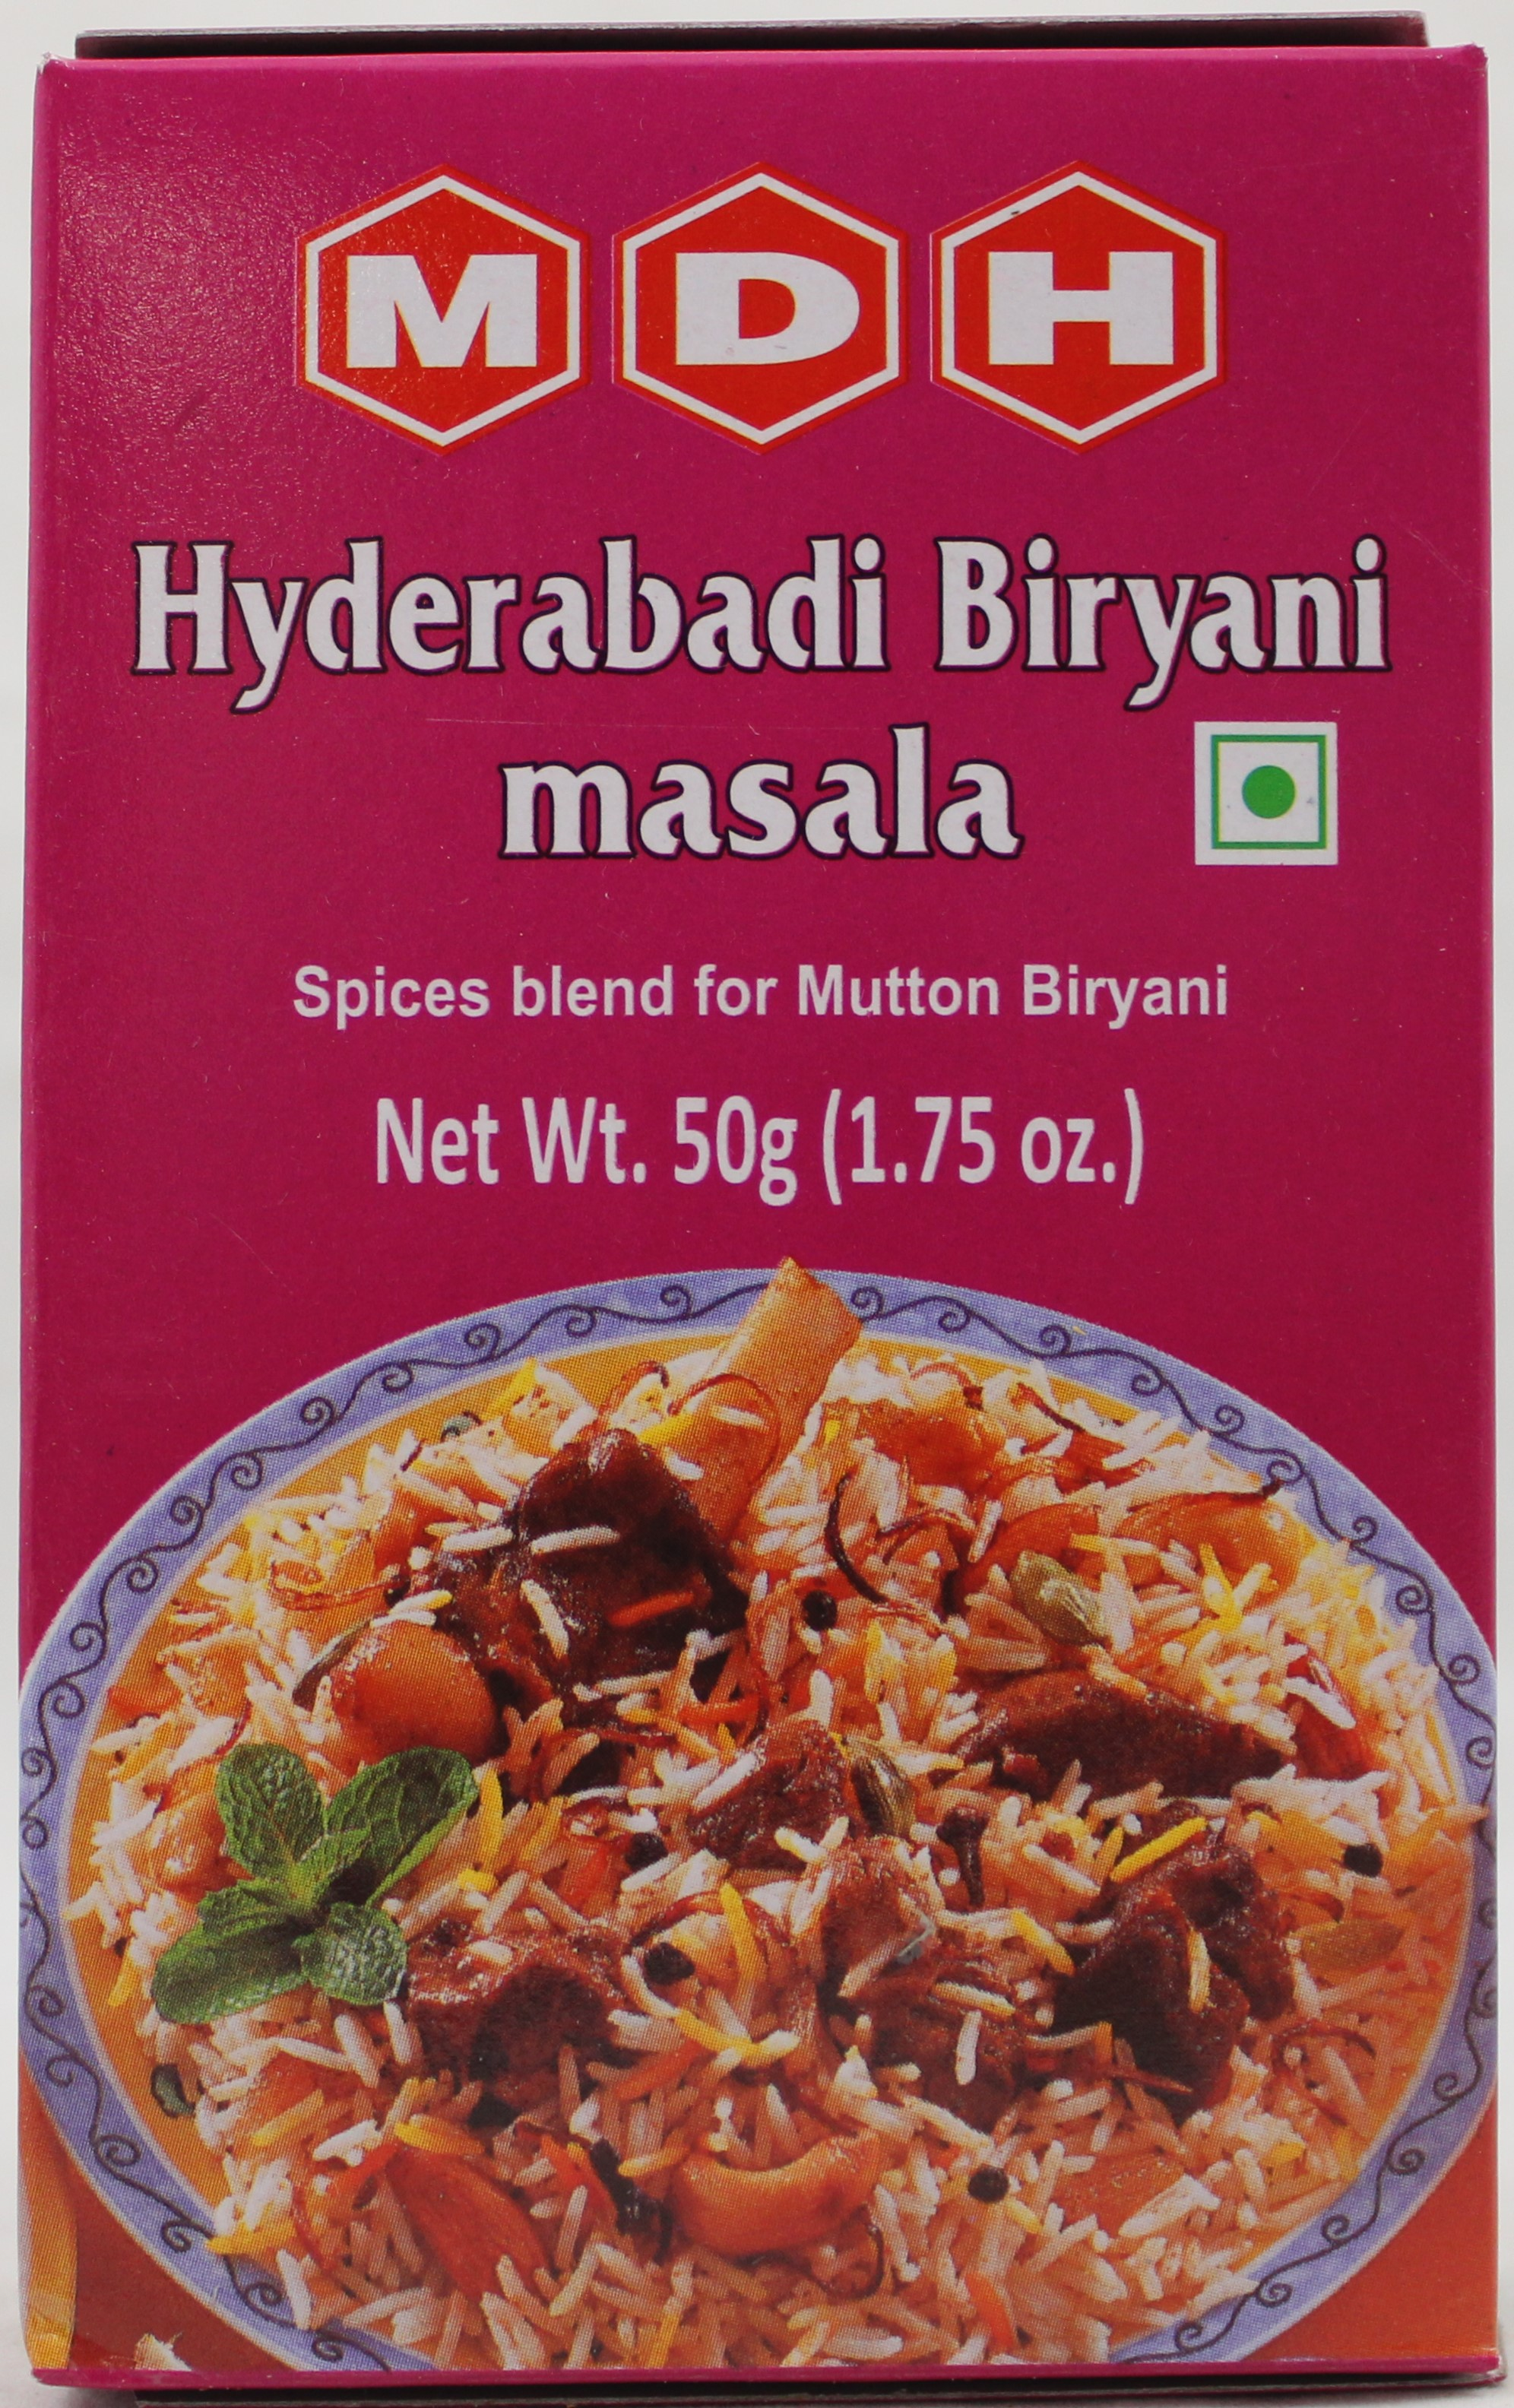 Hyderabadi Biryani Masala1.75oz